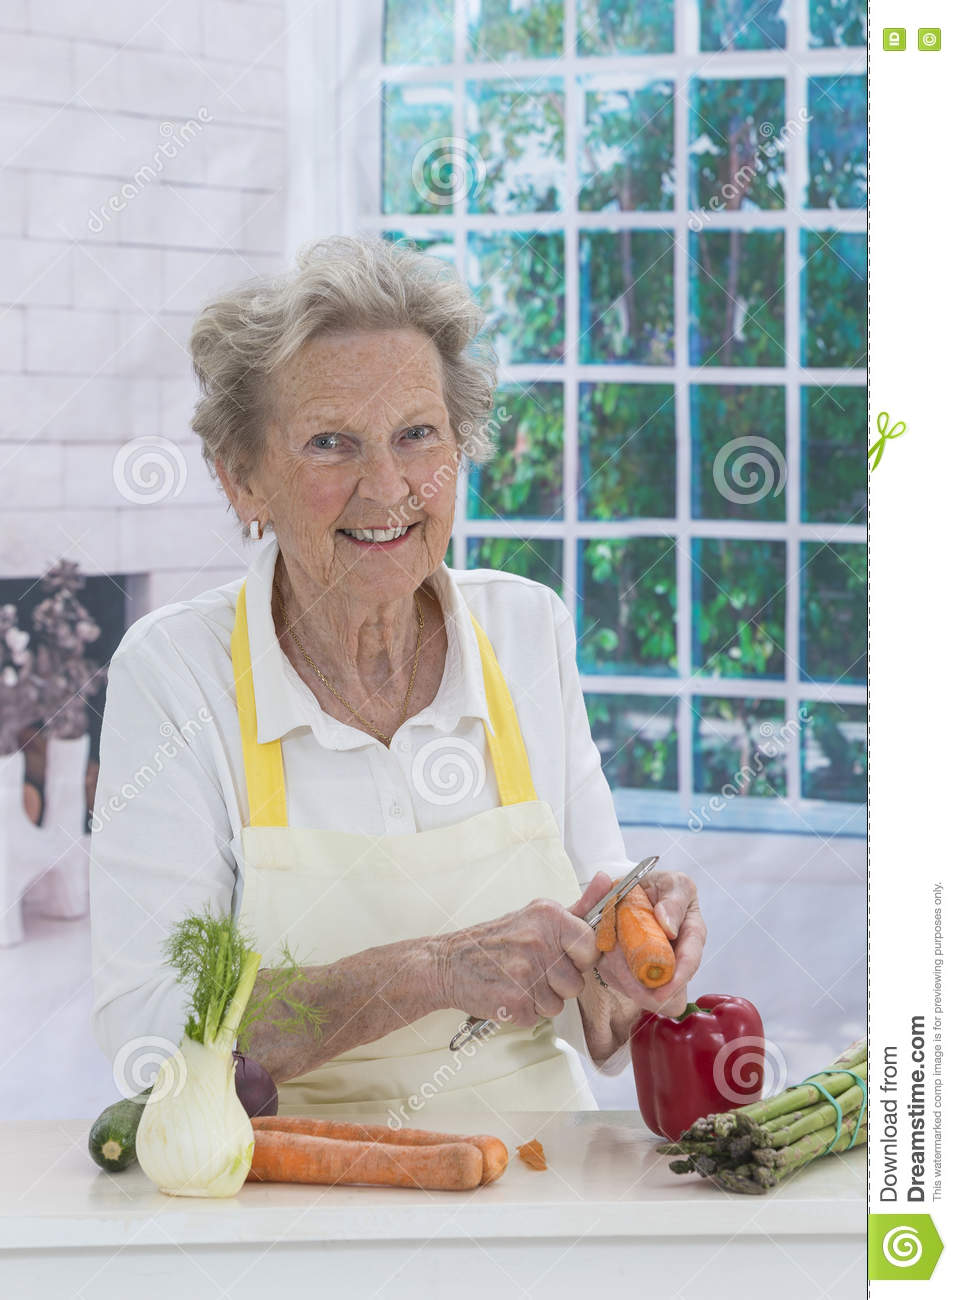 Happy Senior Woman Cooking In Kitchen Stock Image - Image of ...